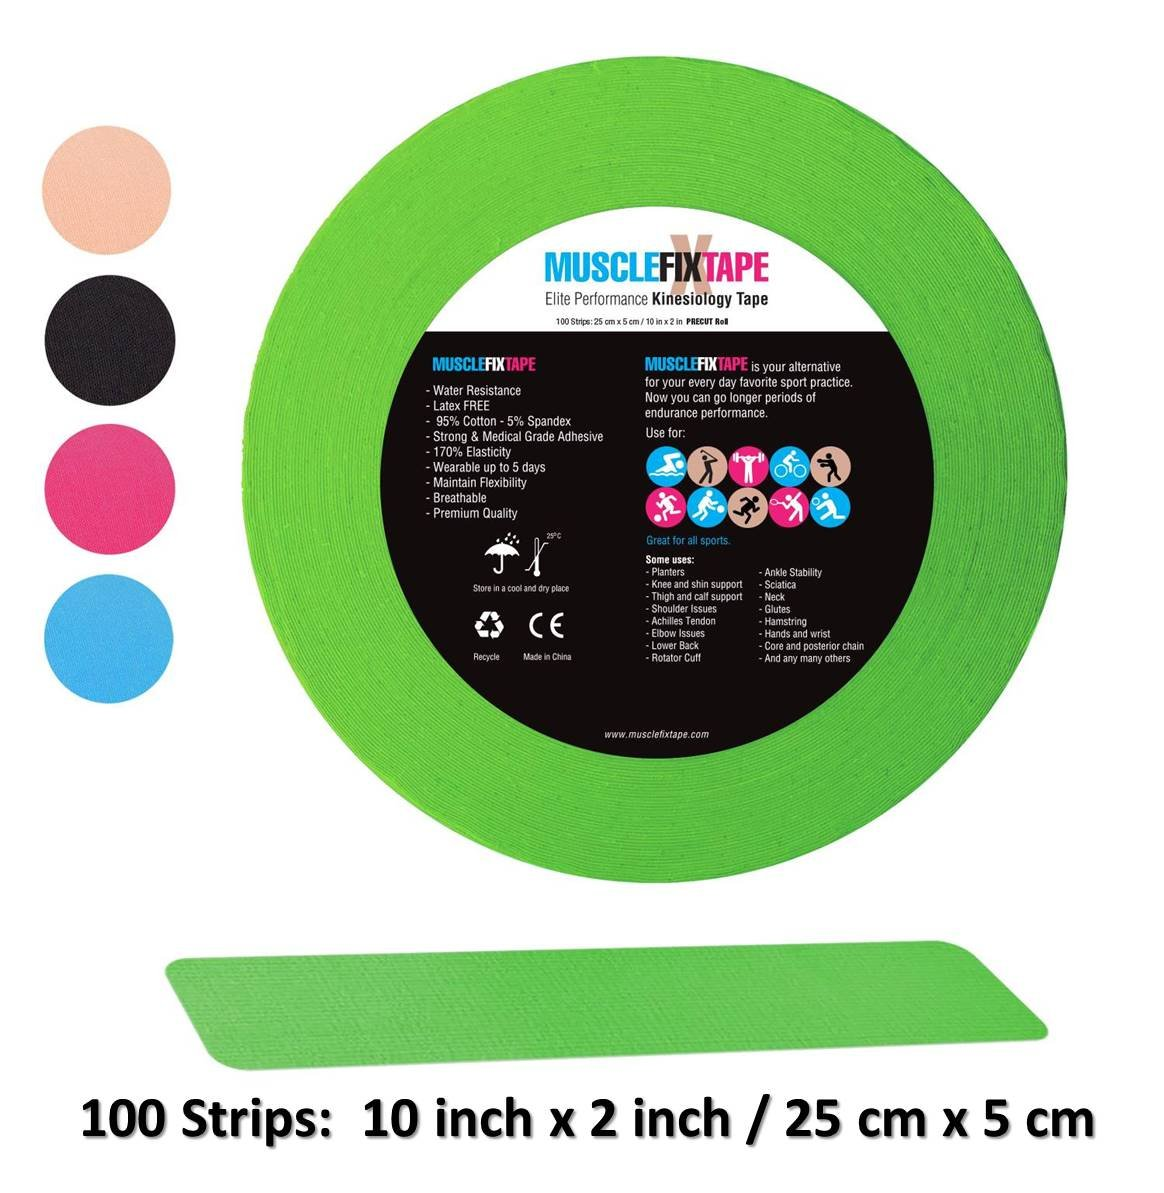 Green Kinesiology Tape Precut Roll - Bulk Jumbo Clinical Size Recovery Sports Athletic Injury Therapeutic Support PRO Physio Therapy (100 Strips: 10 in x 2 in/25cm x 5cm) kt rocktape rock-tape rock